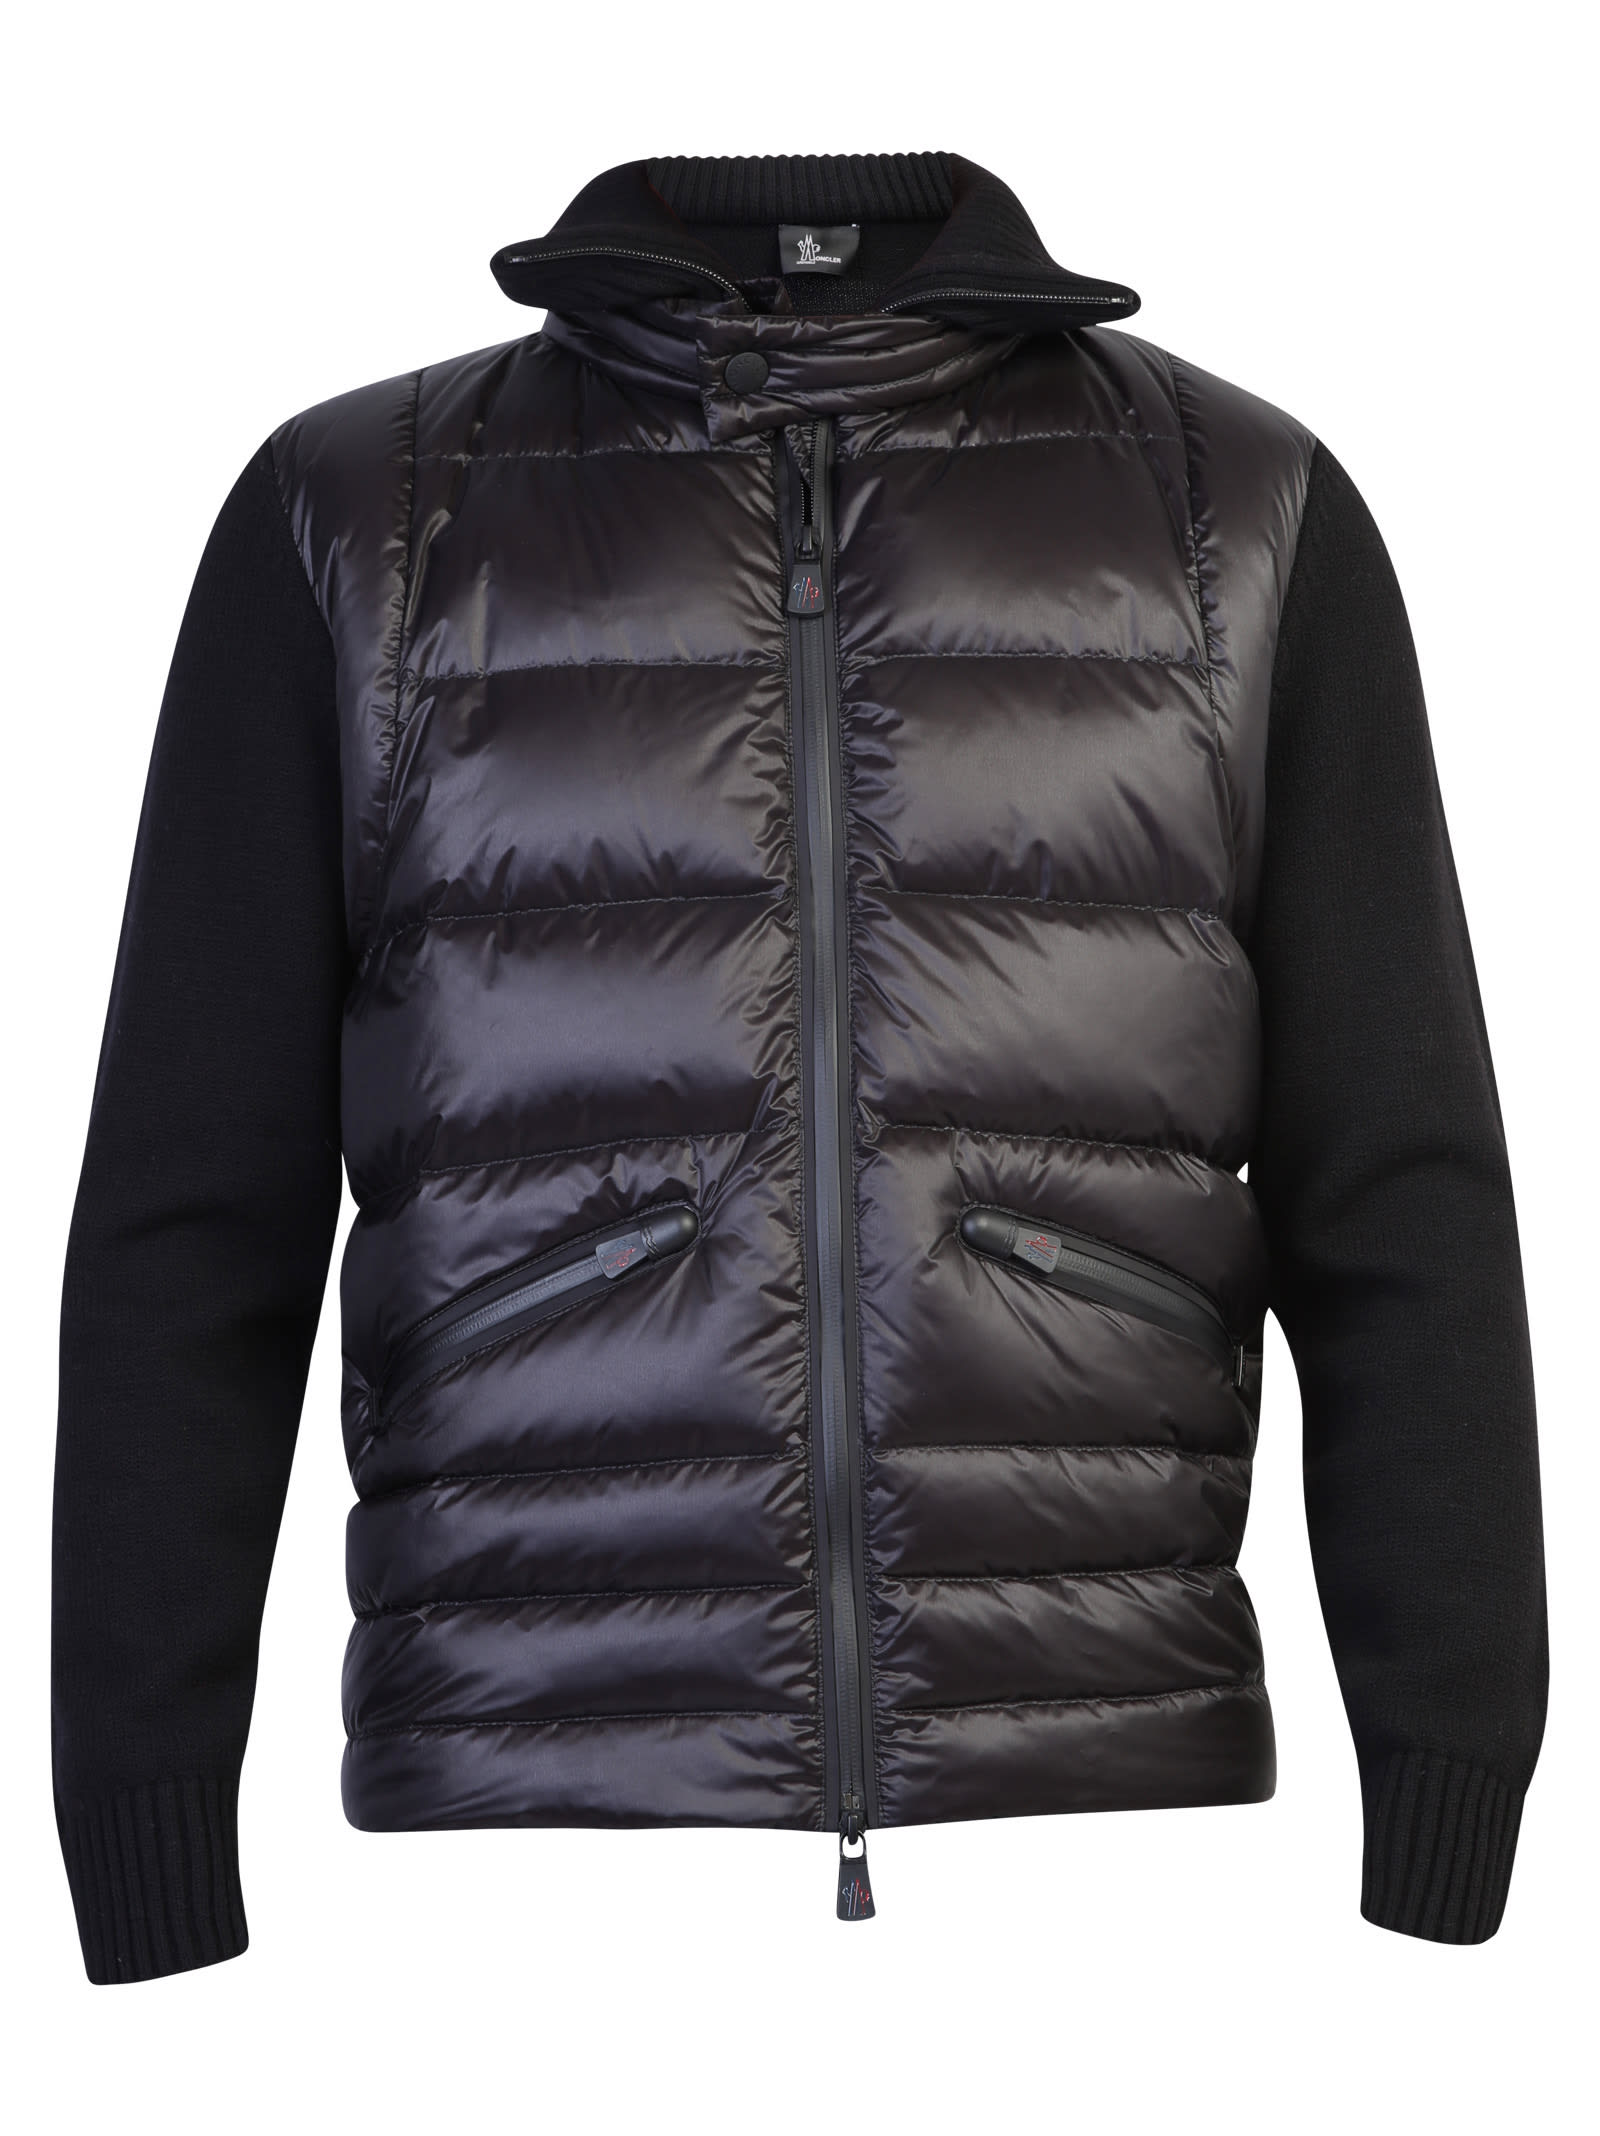 Moncler Grenoble Tops ZIPPED CARDIGAN